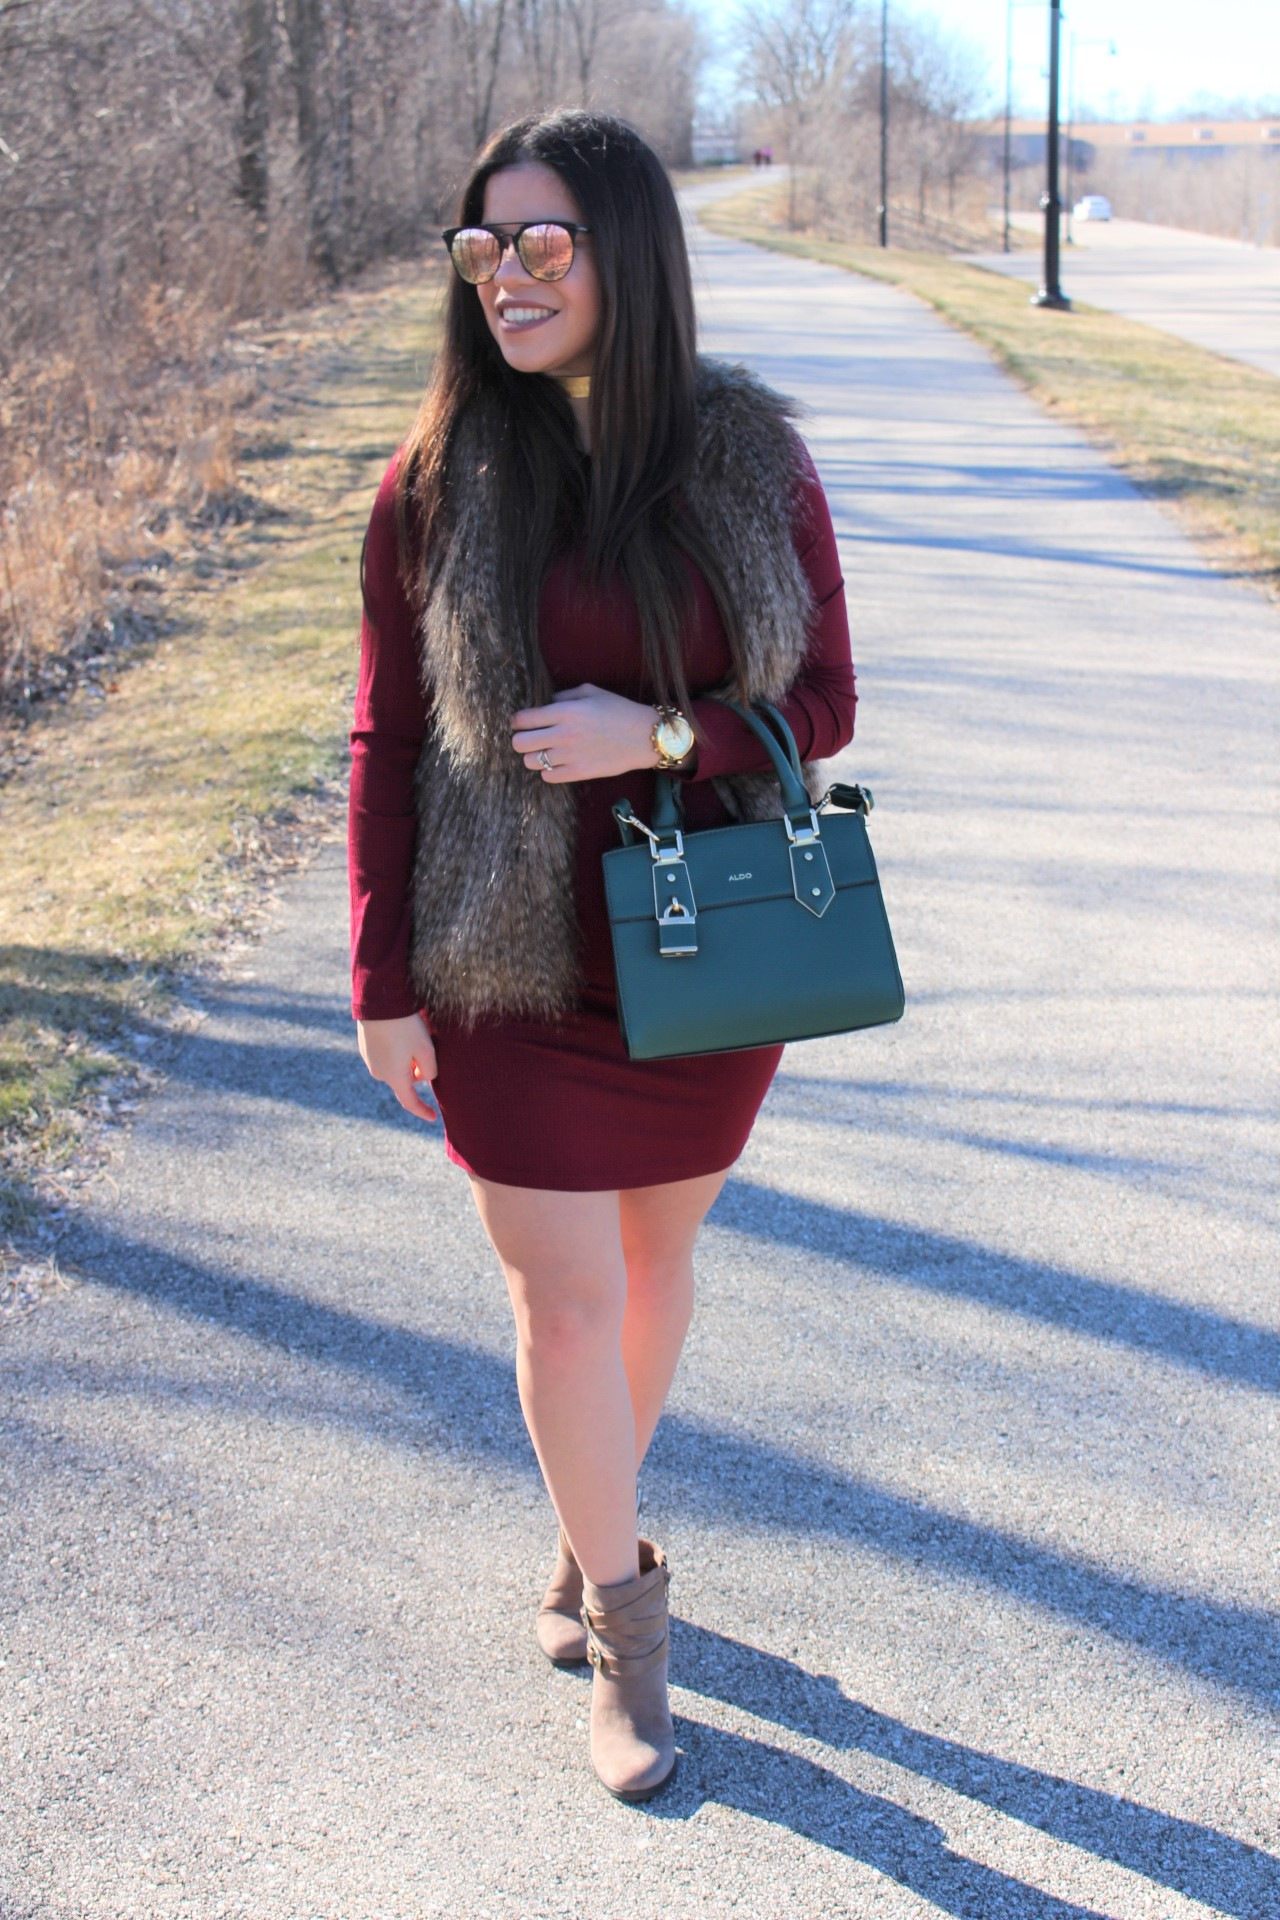 vestido vinotinto burgundy dress quay sunglasses aldo handbag fall winter spring outfit aldo green handbag michael kors watch justfab booties casual outfit by alejandra avila tufashionpetite